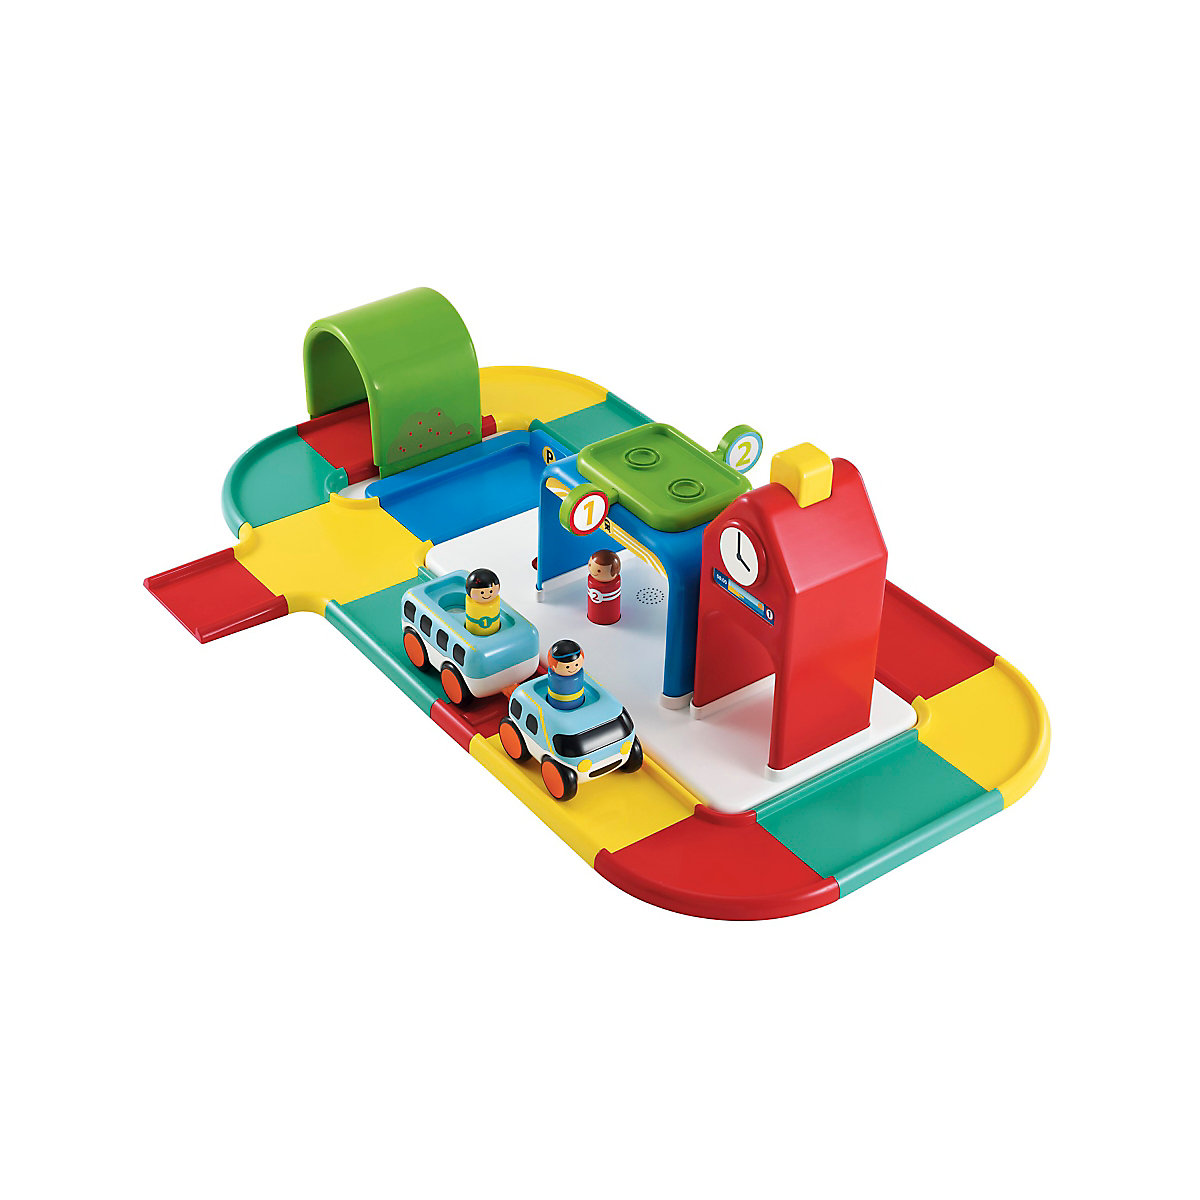 New ELC Boys and Girls Whizz World Fun Sounds Train Station Toy From 12 months - Toy Gifts